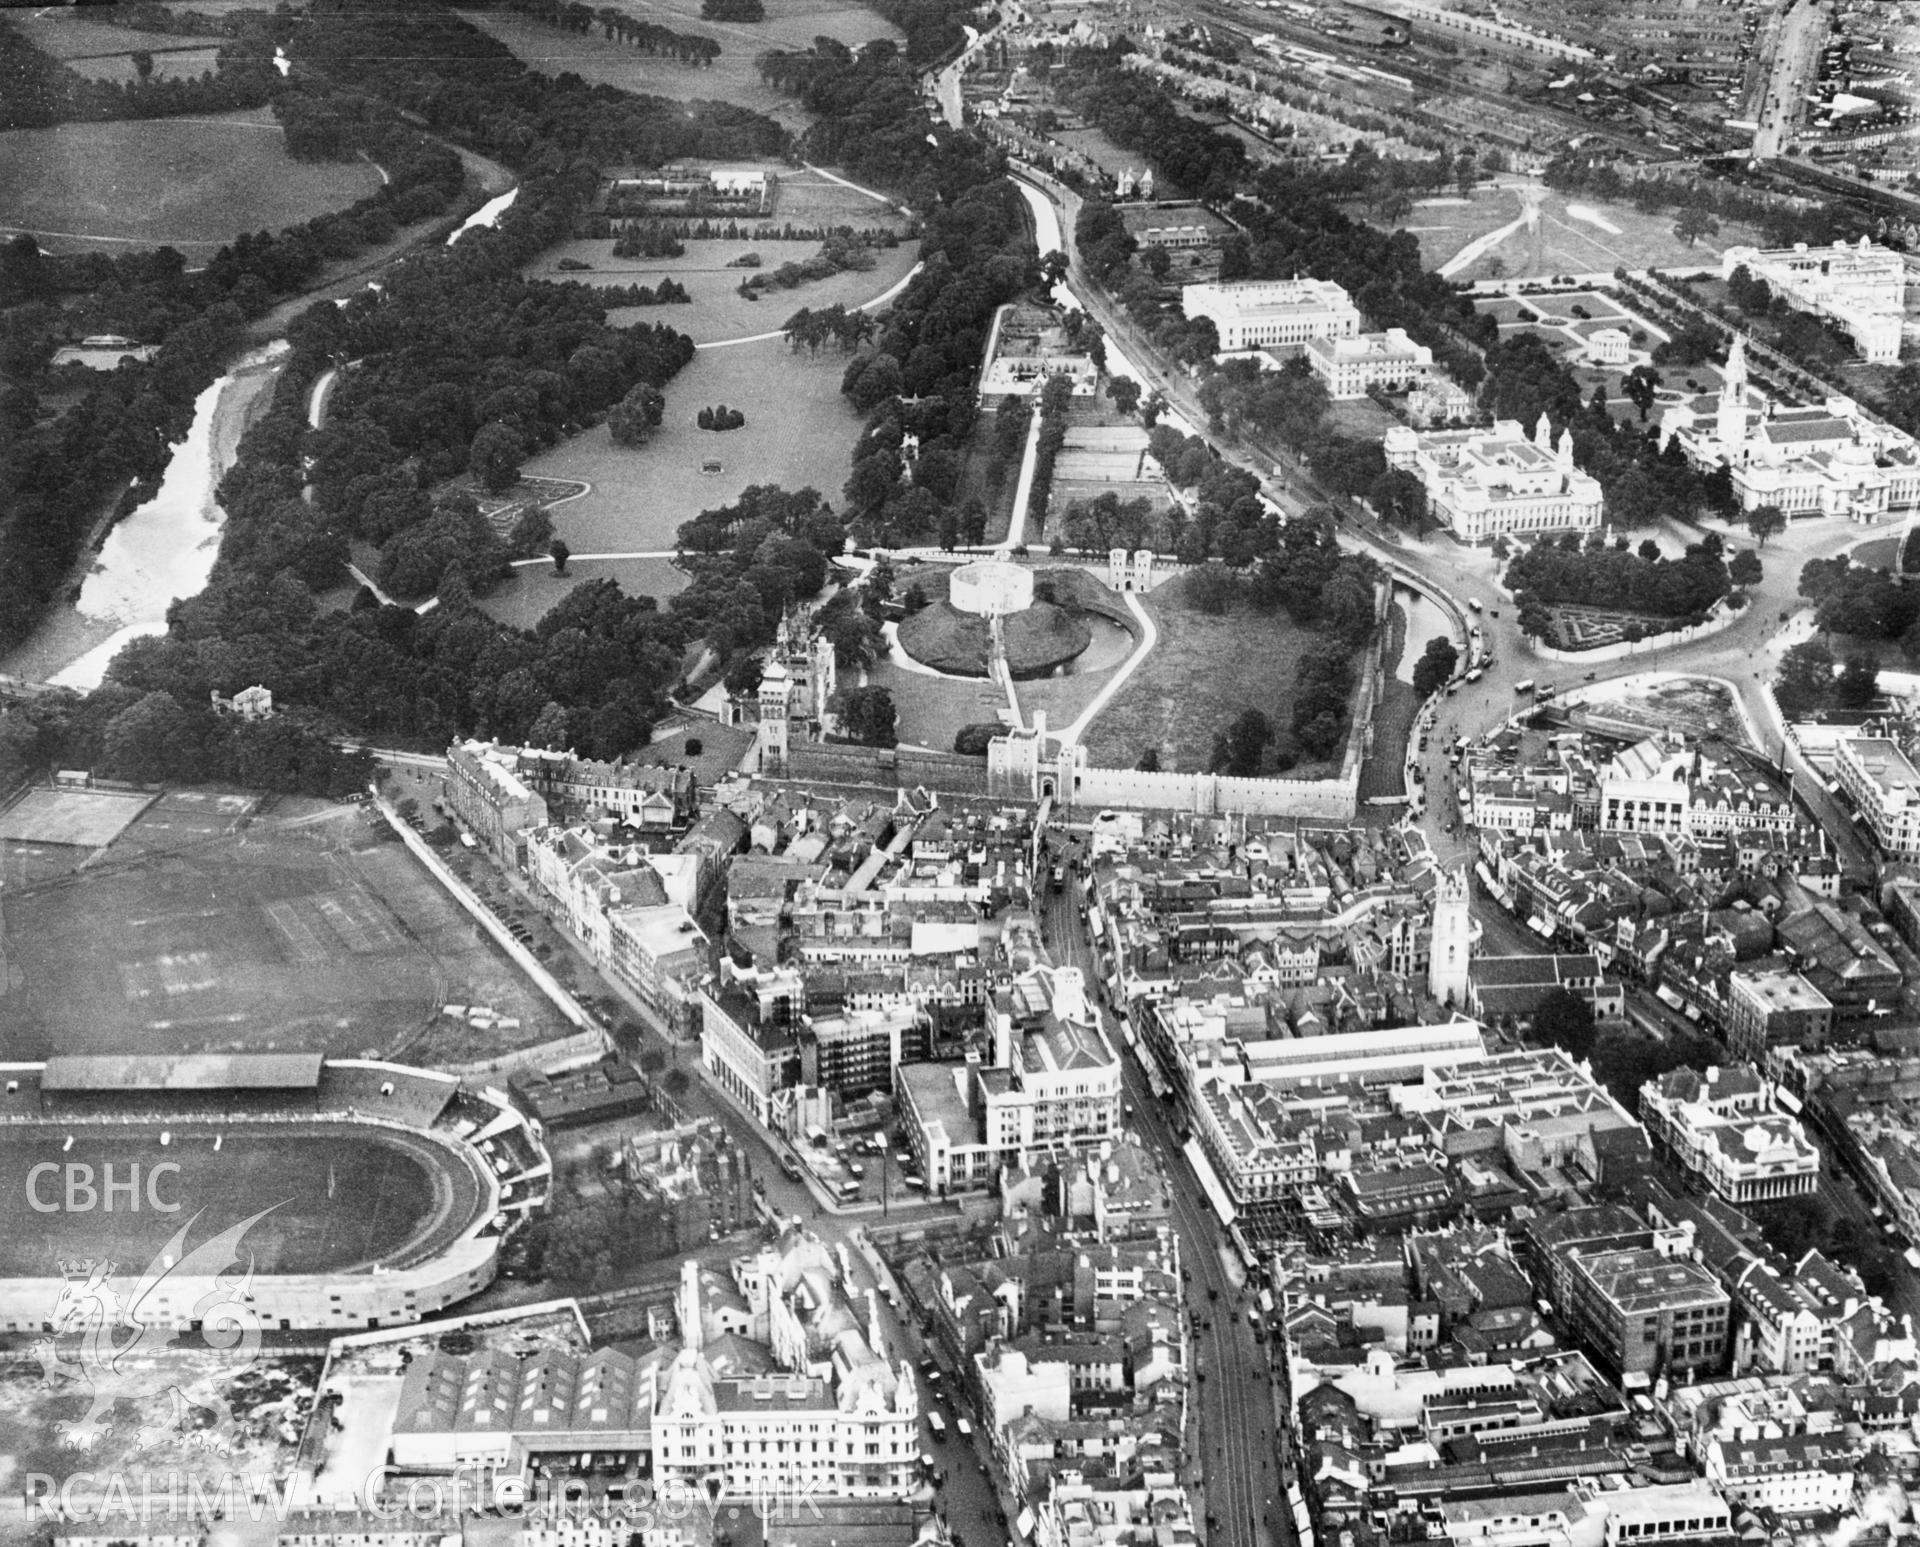 View of Cardiff showing castle, Bute Park and Cardiff Arms Park. Oblique aerial photograph, 5?x4? BW glass plate.